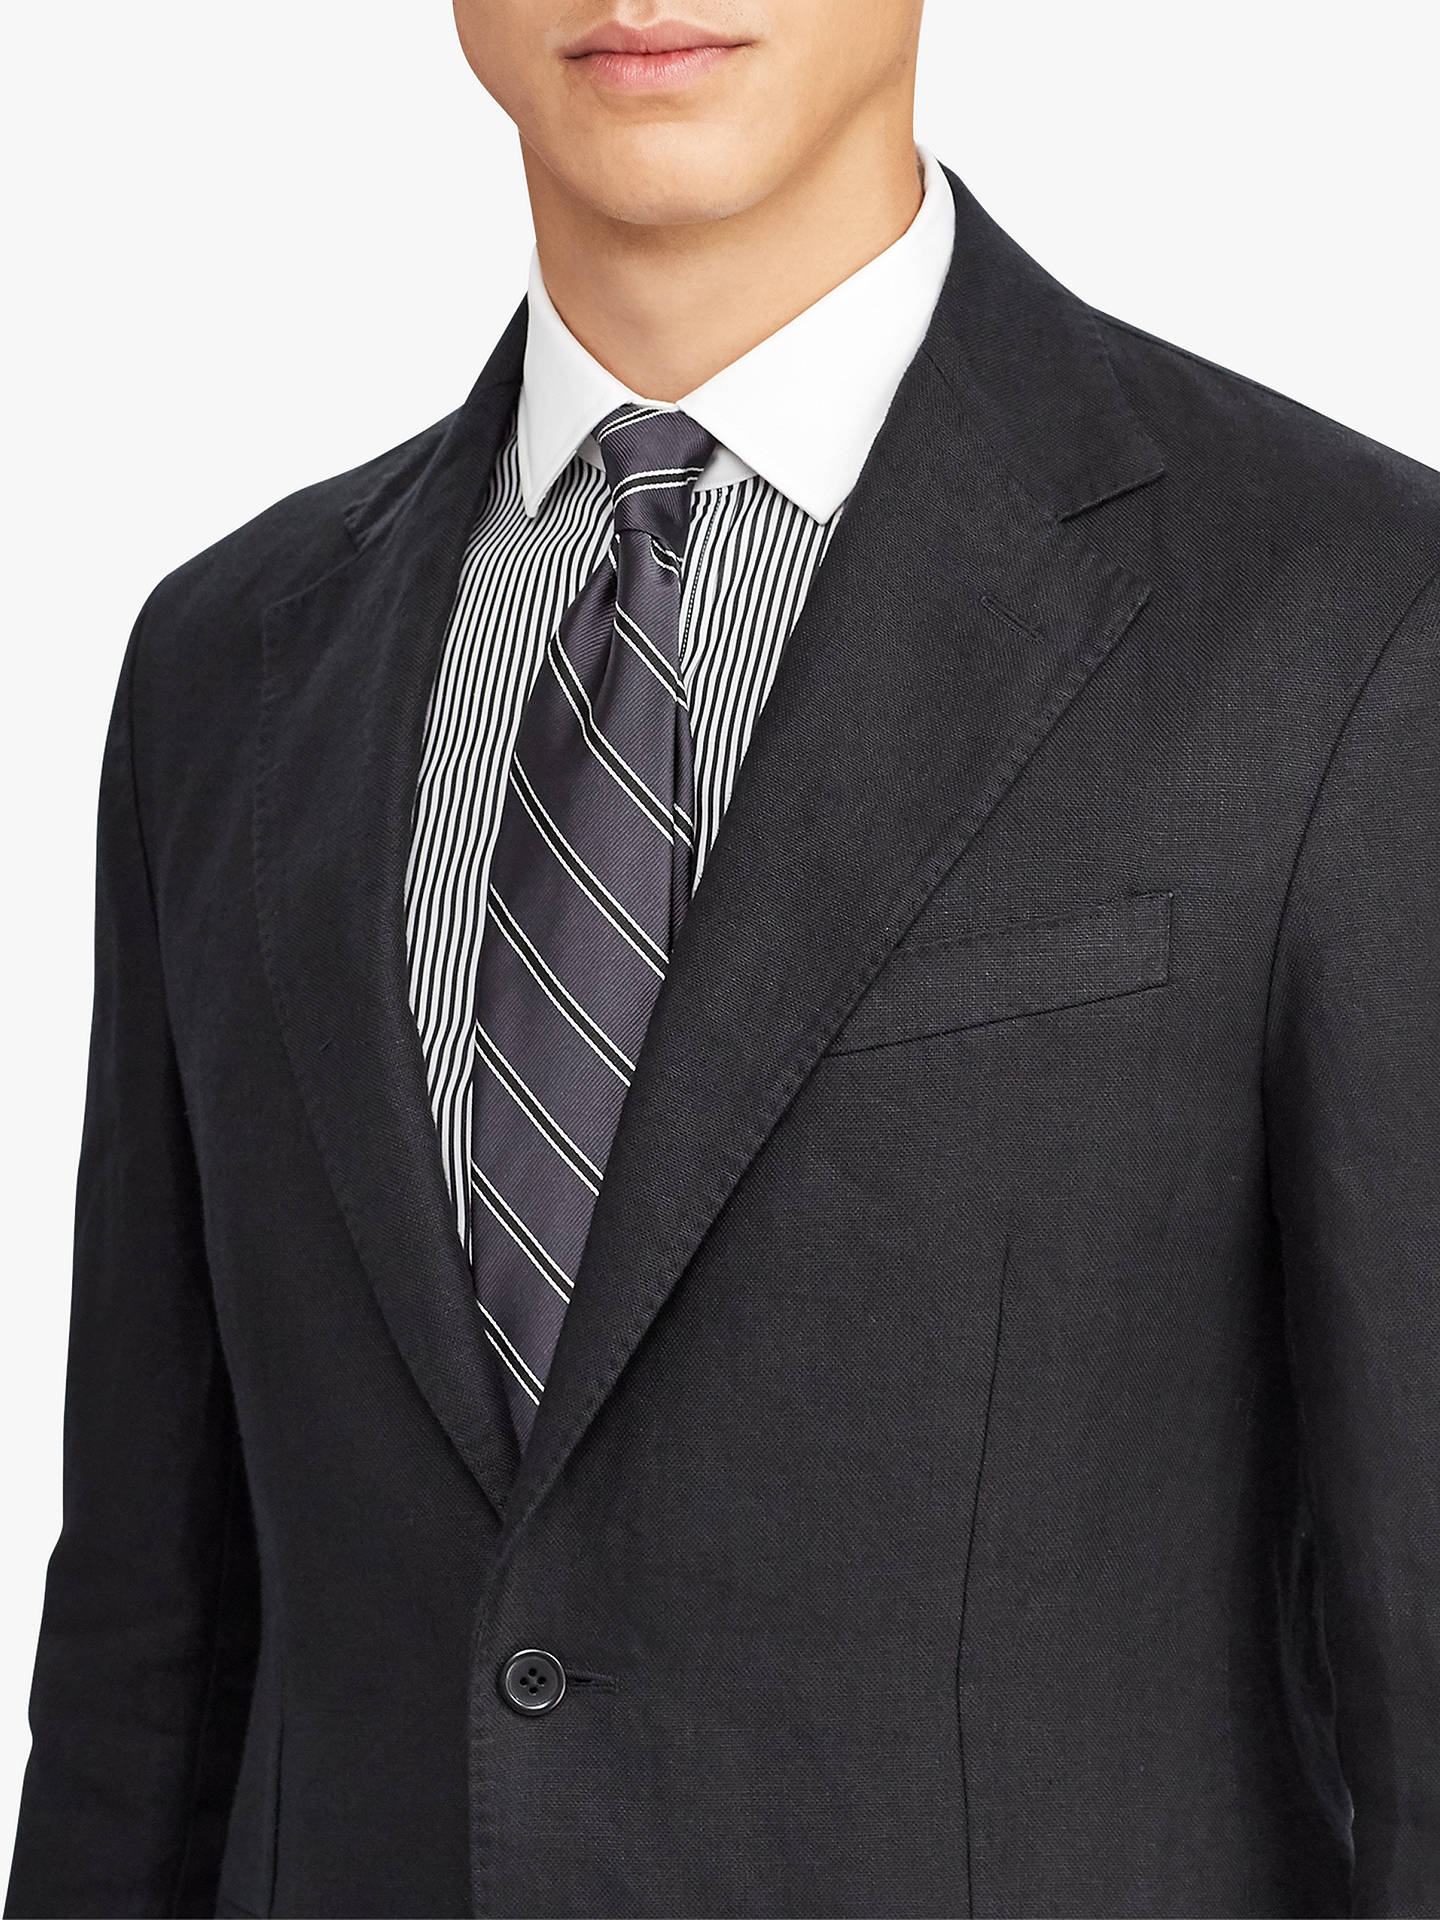 BuyPolo Ralph Lauren Linen Sports Coat, Black, 40R Online at johnlewis.com